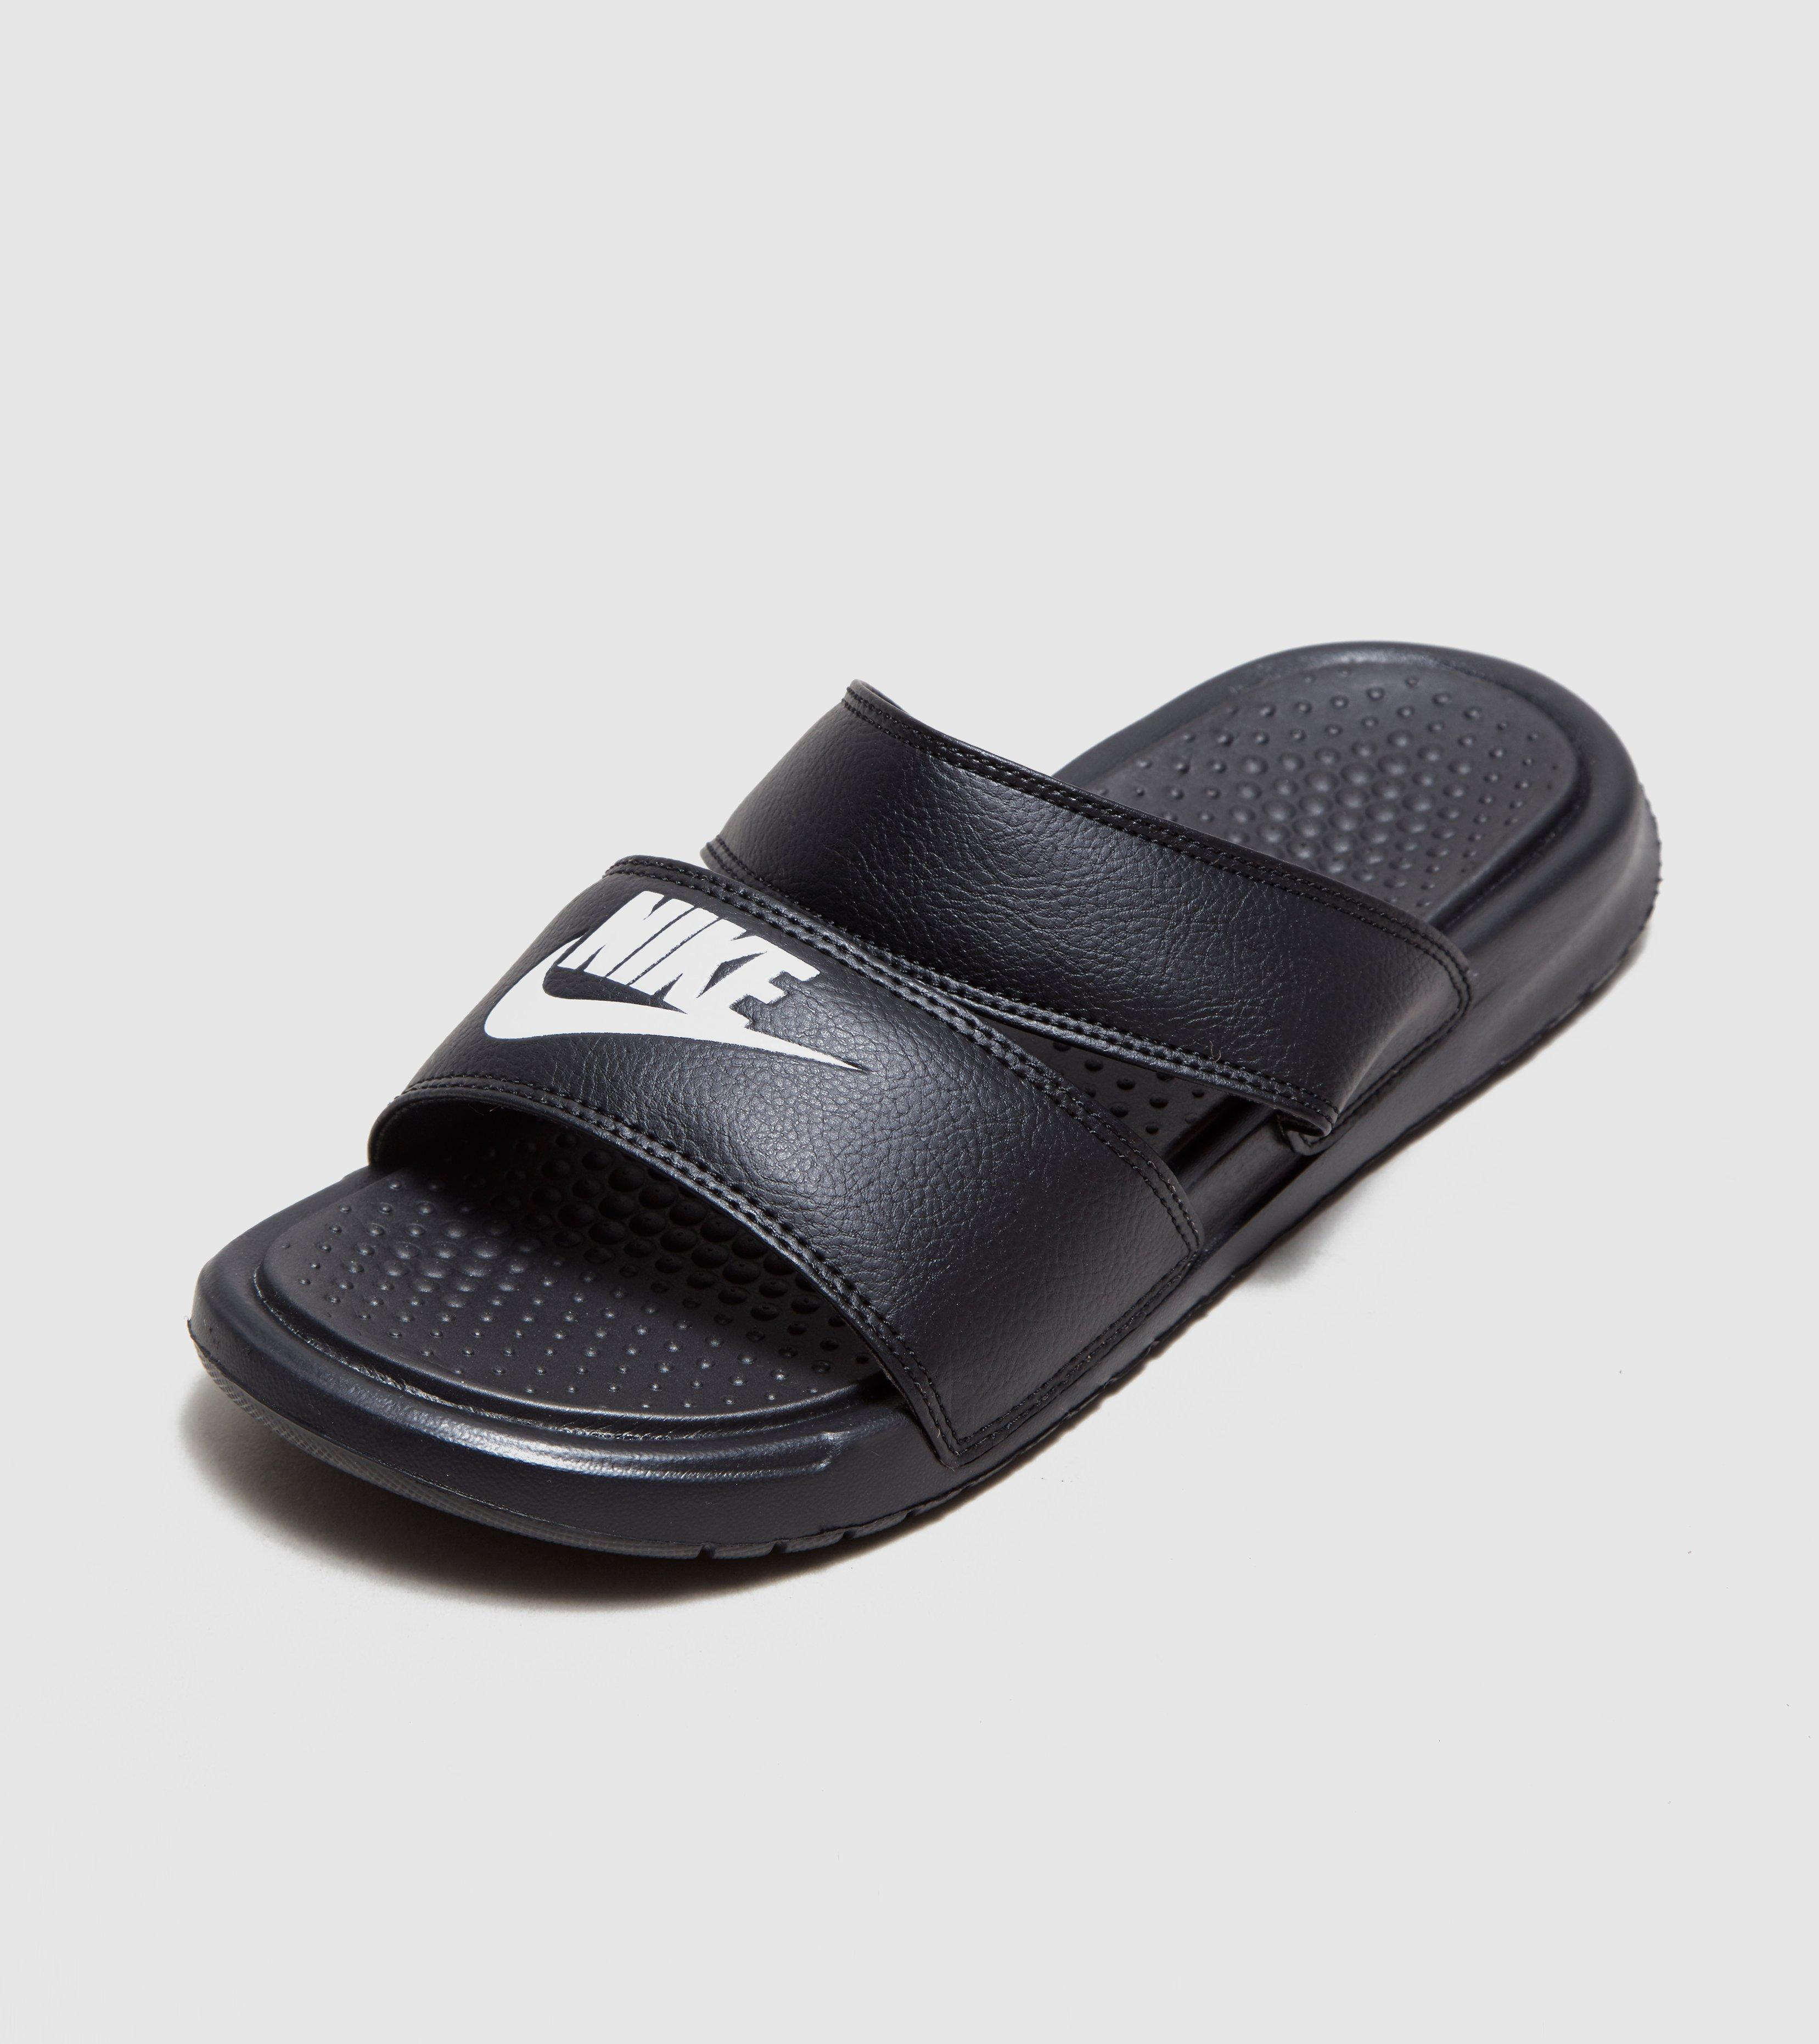 b88c7105b Lyst - Nike Benassi Duo Ultra Slides Women s in Black for Men